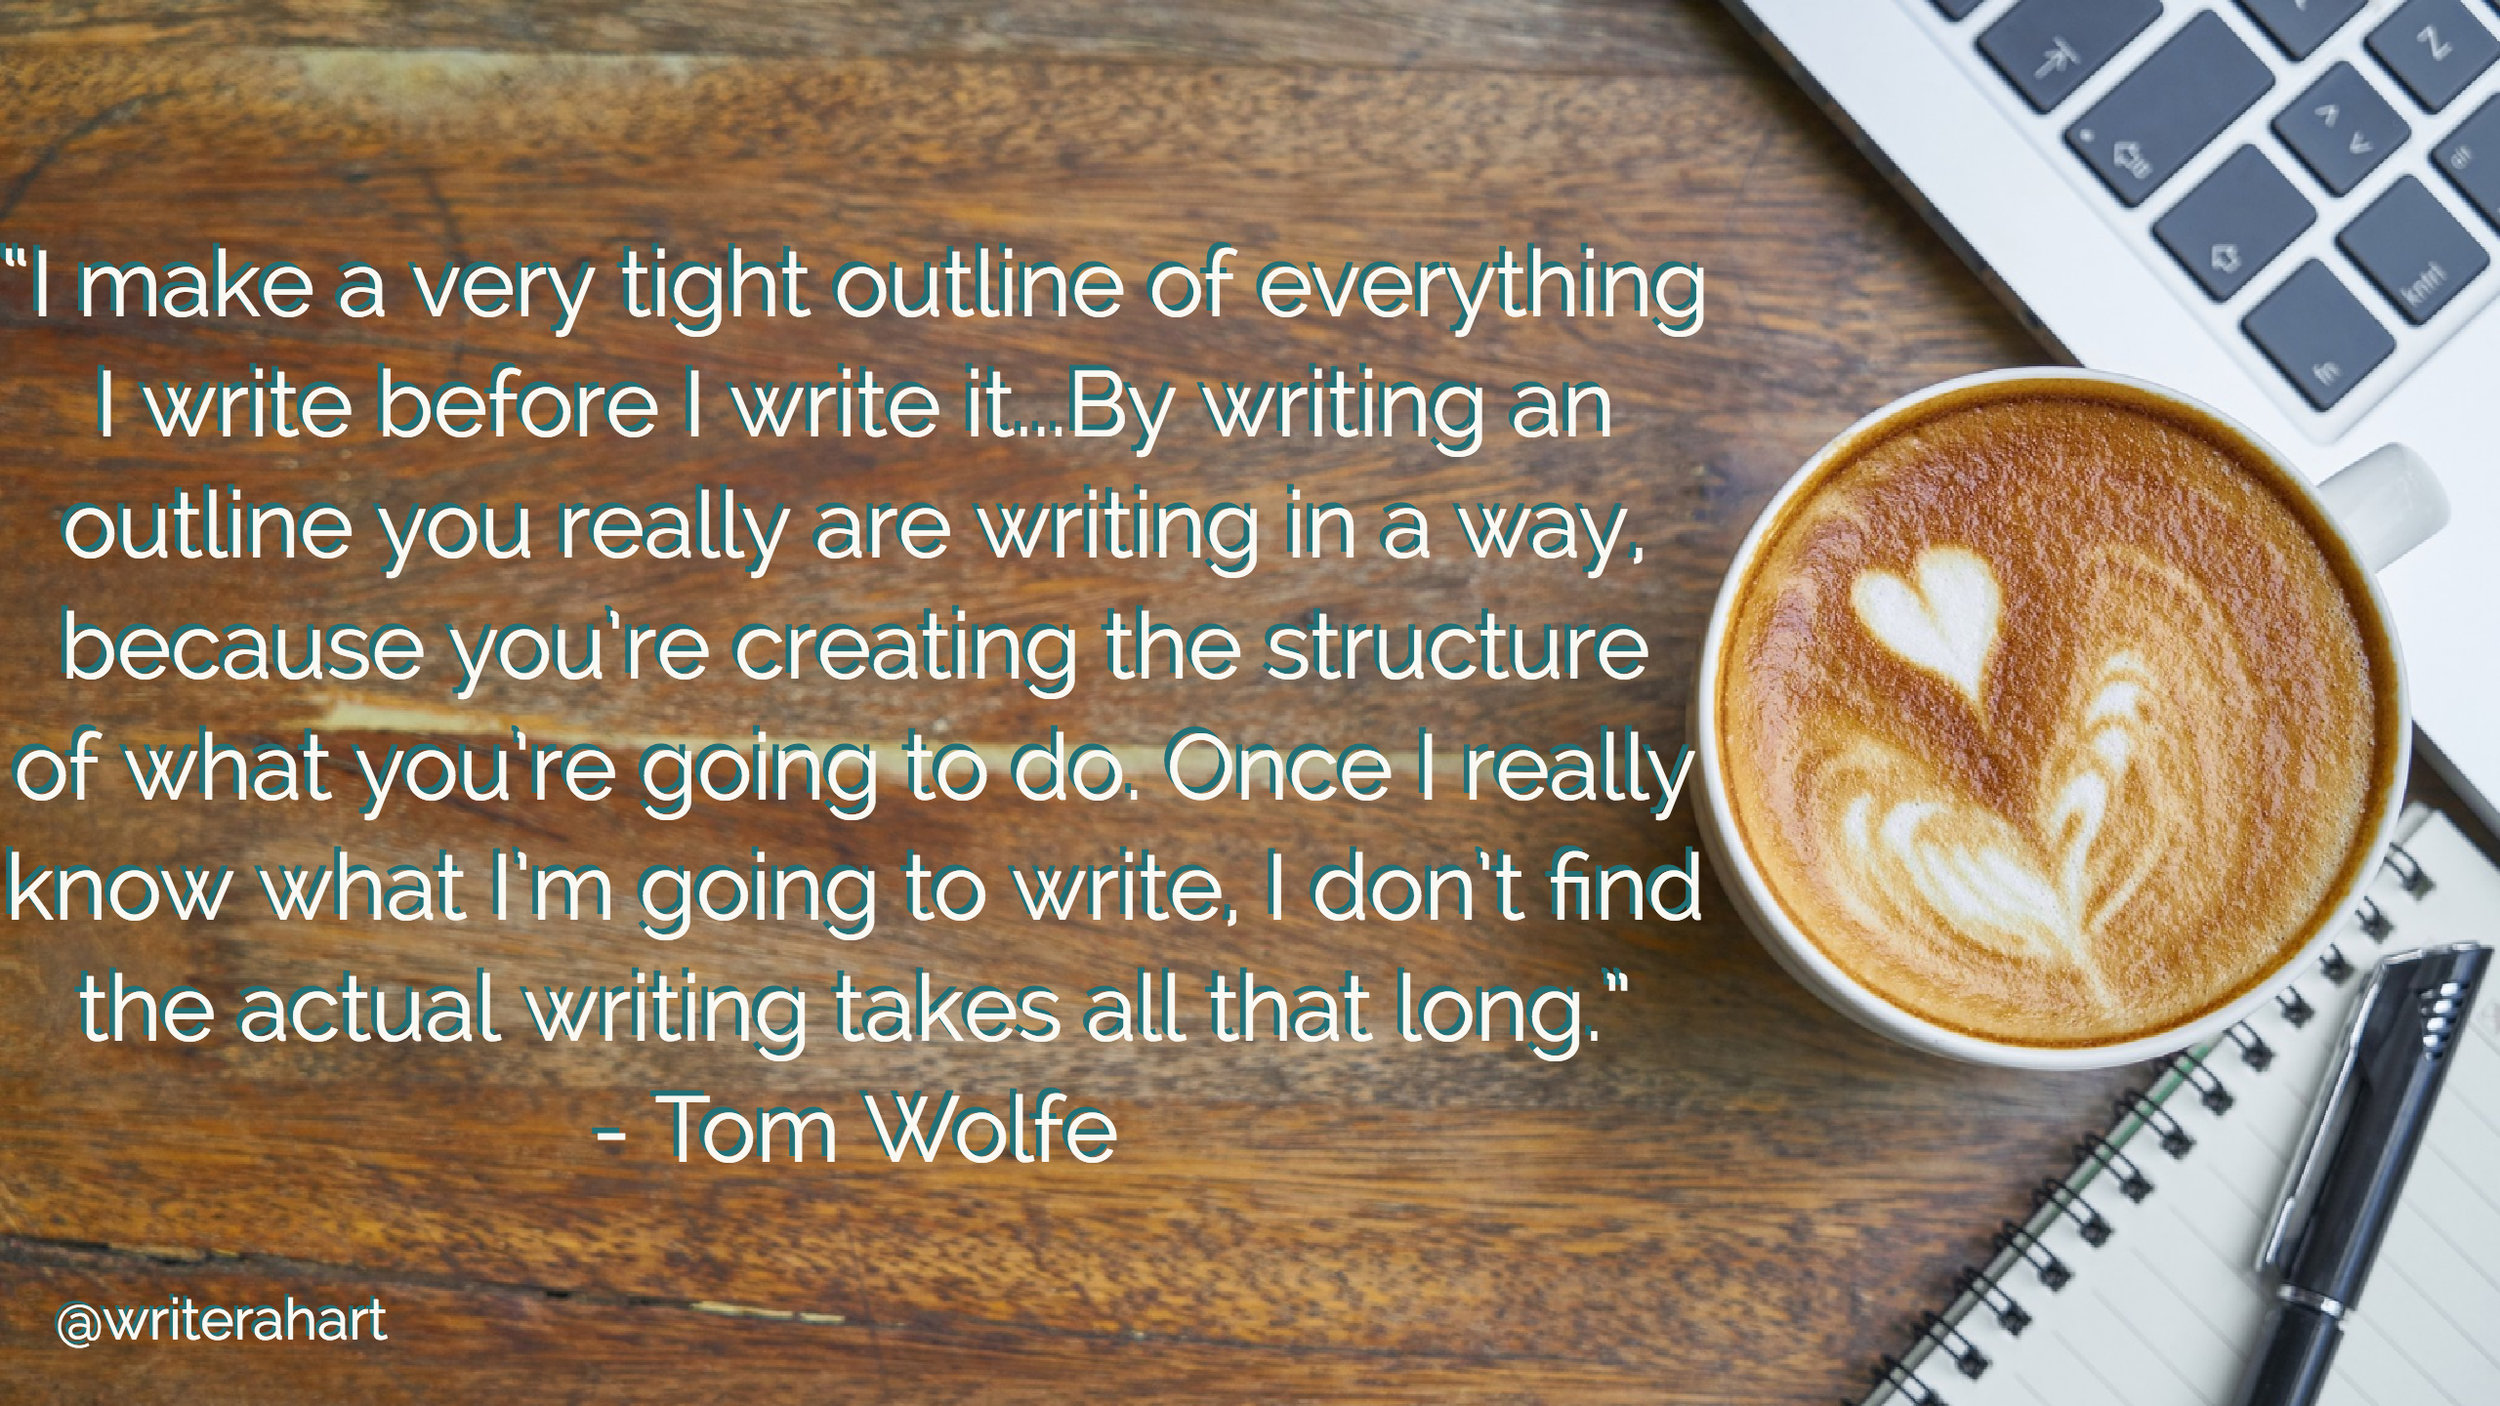 tom wolfe quote .jpg